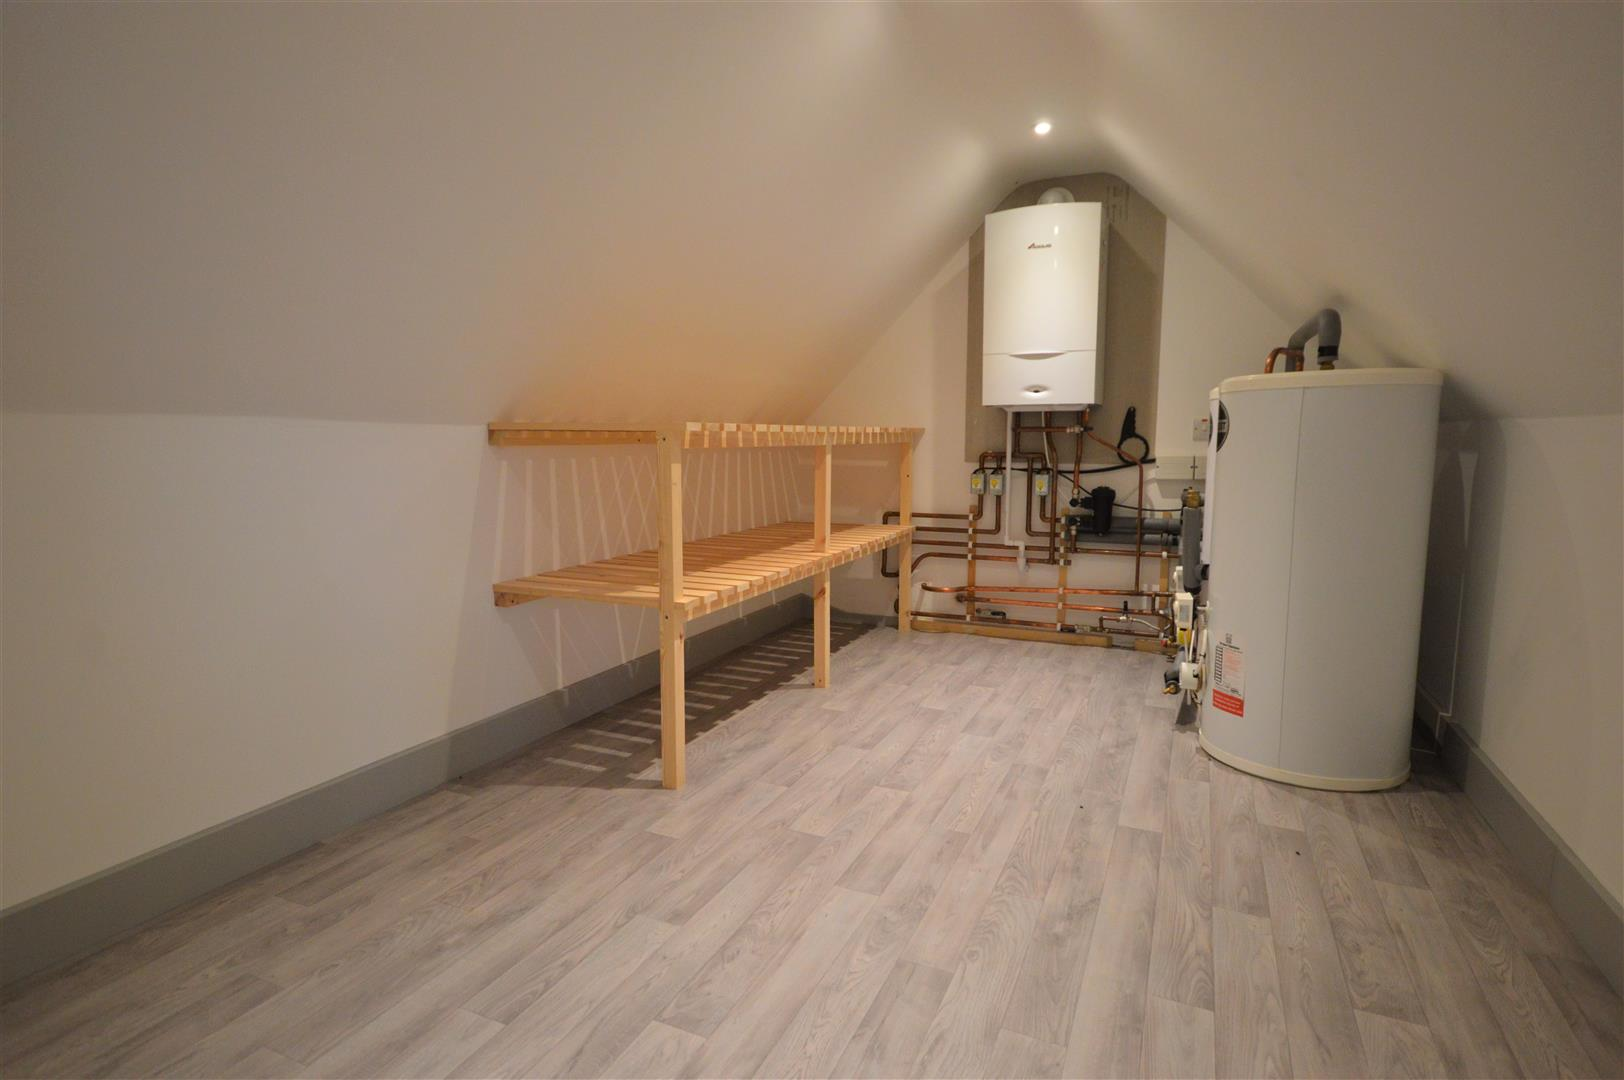 4 bed detached for sale in Brimfield 13